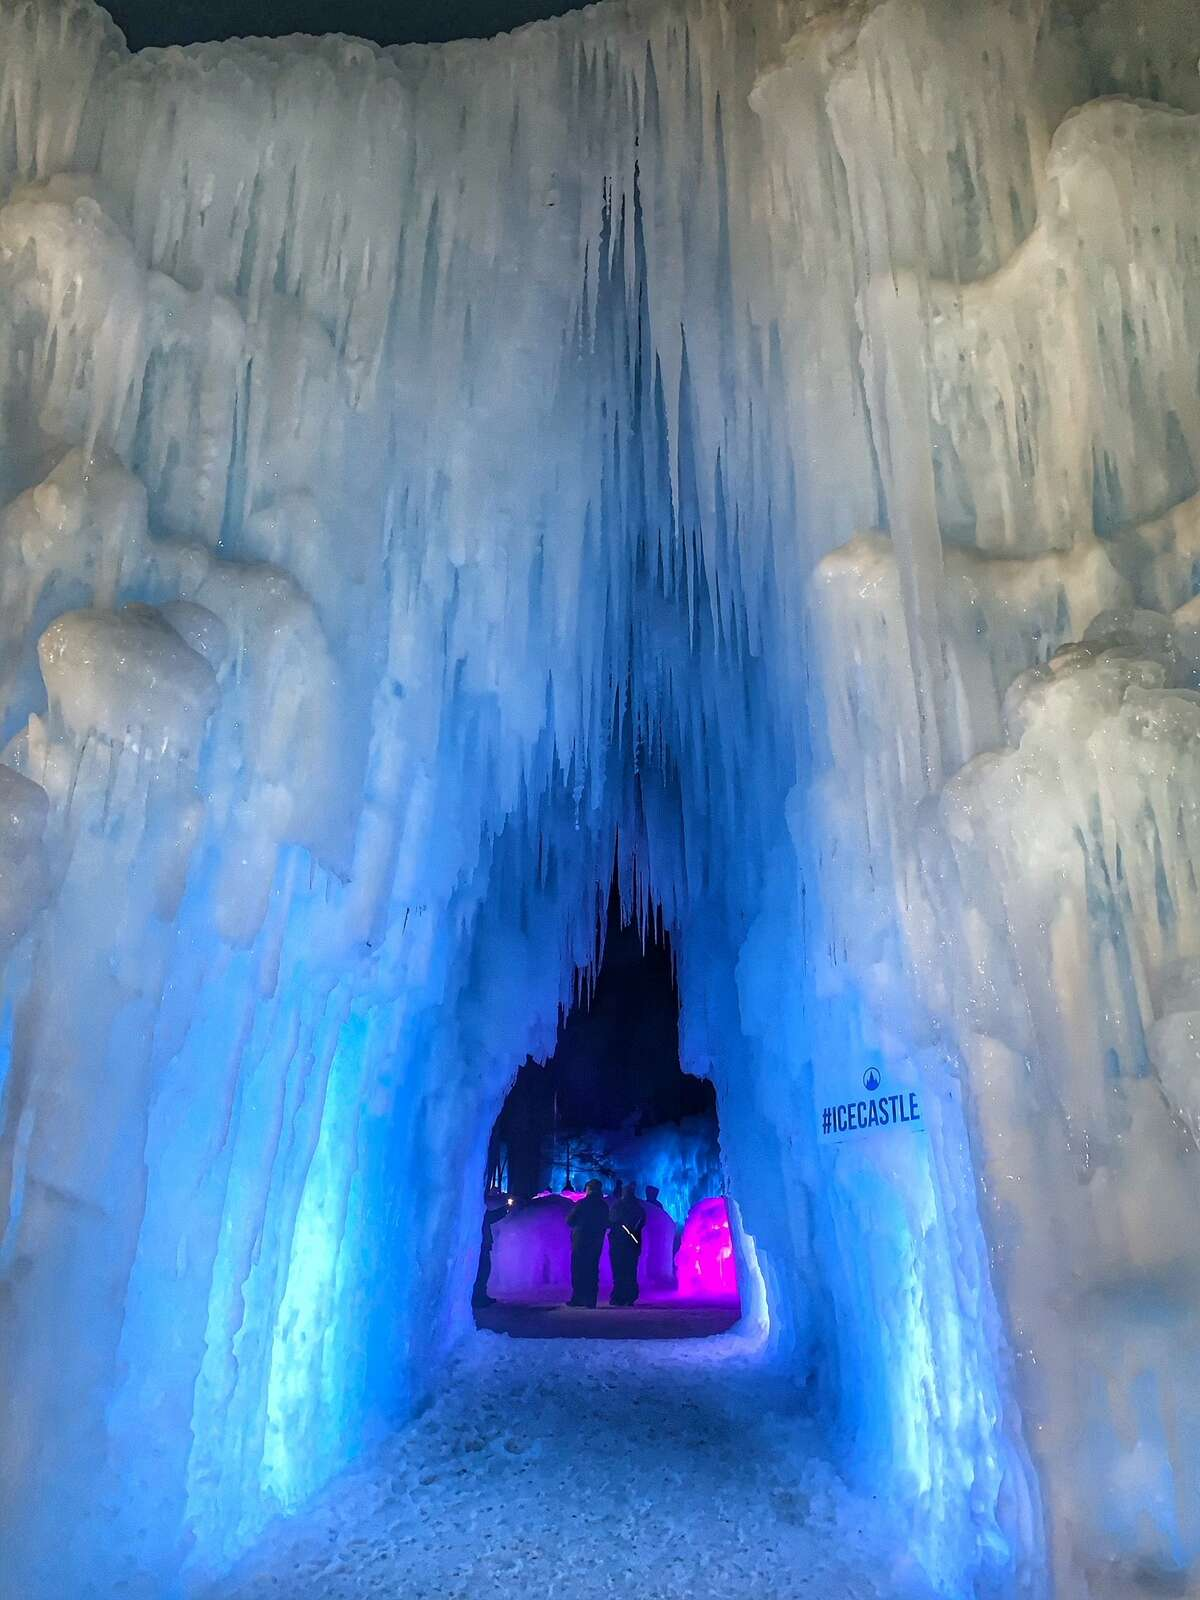 A glowing entrance to the New Hampshire Ice Castle.